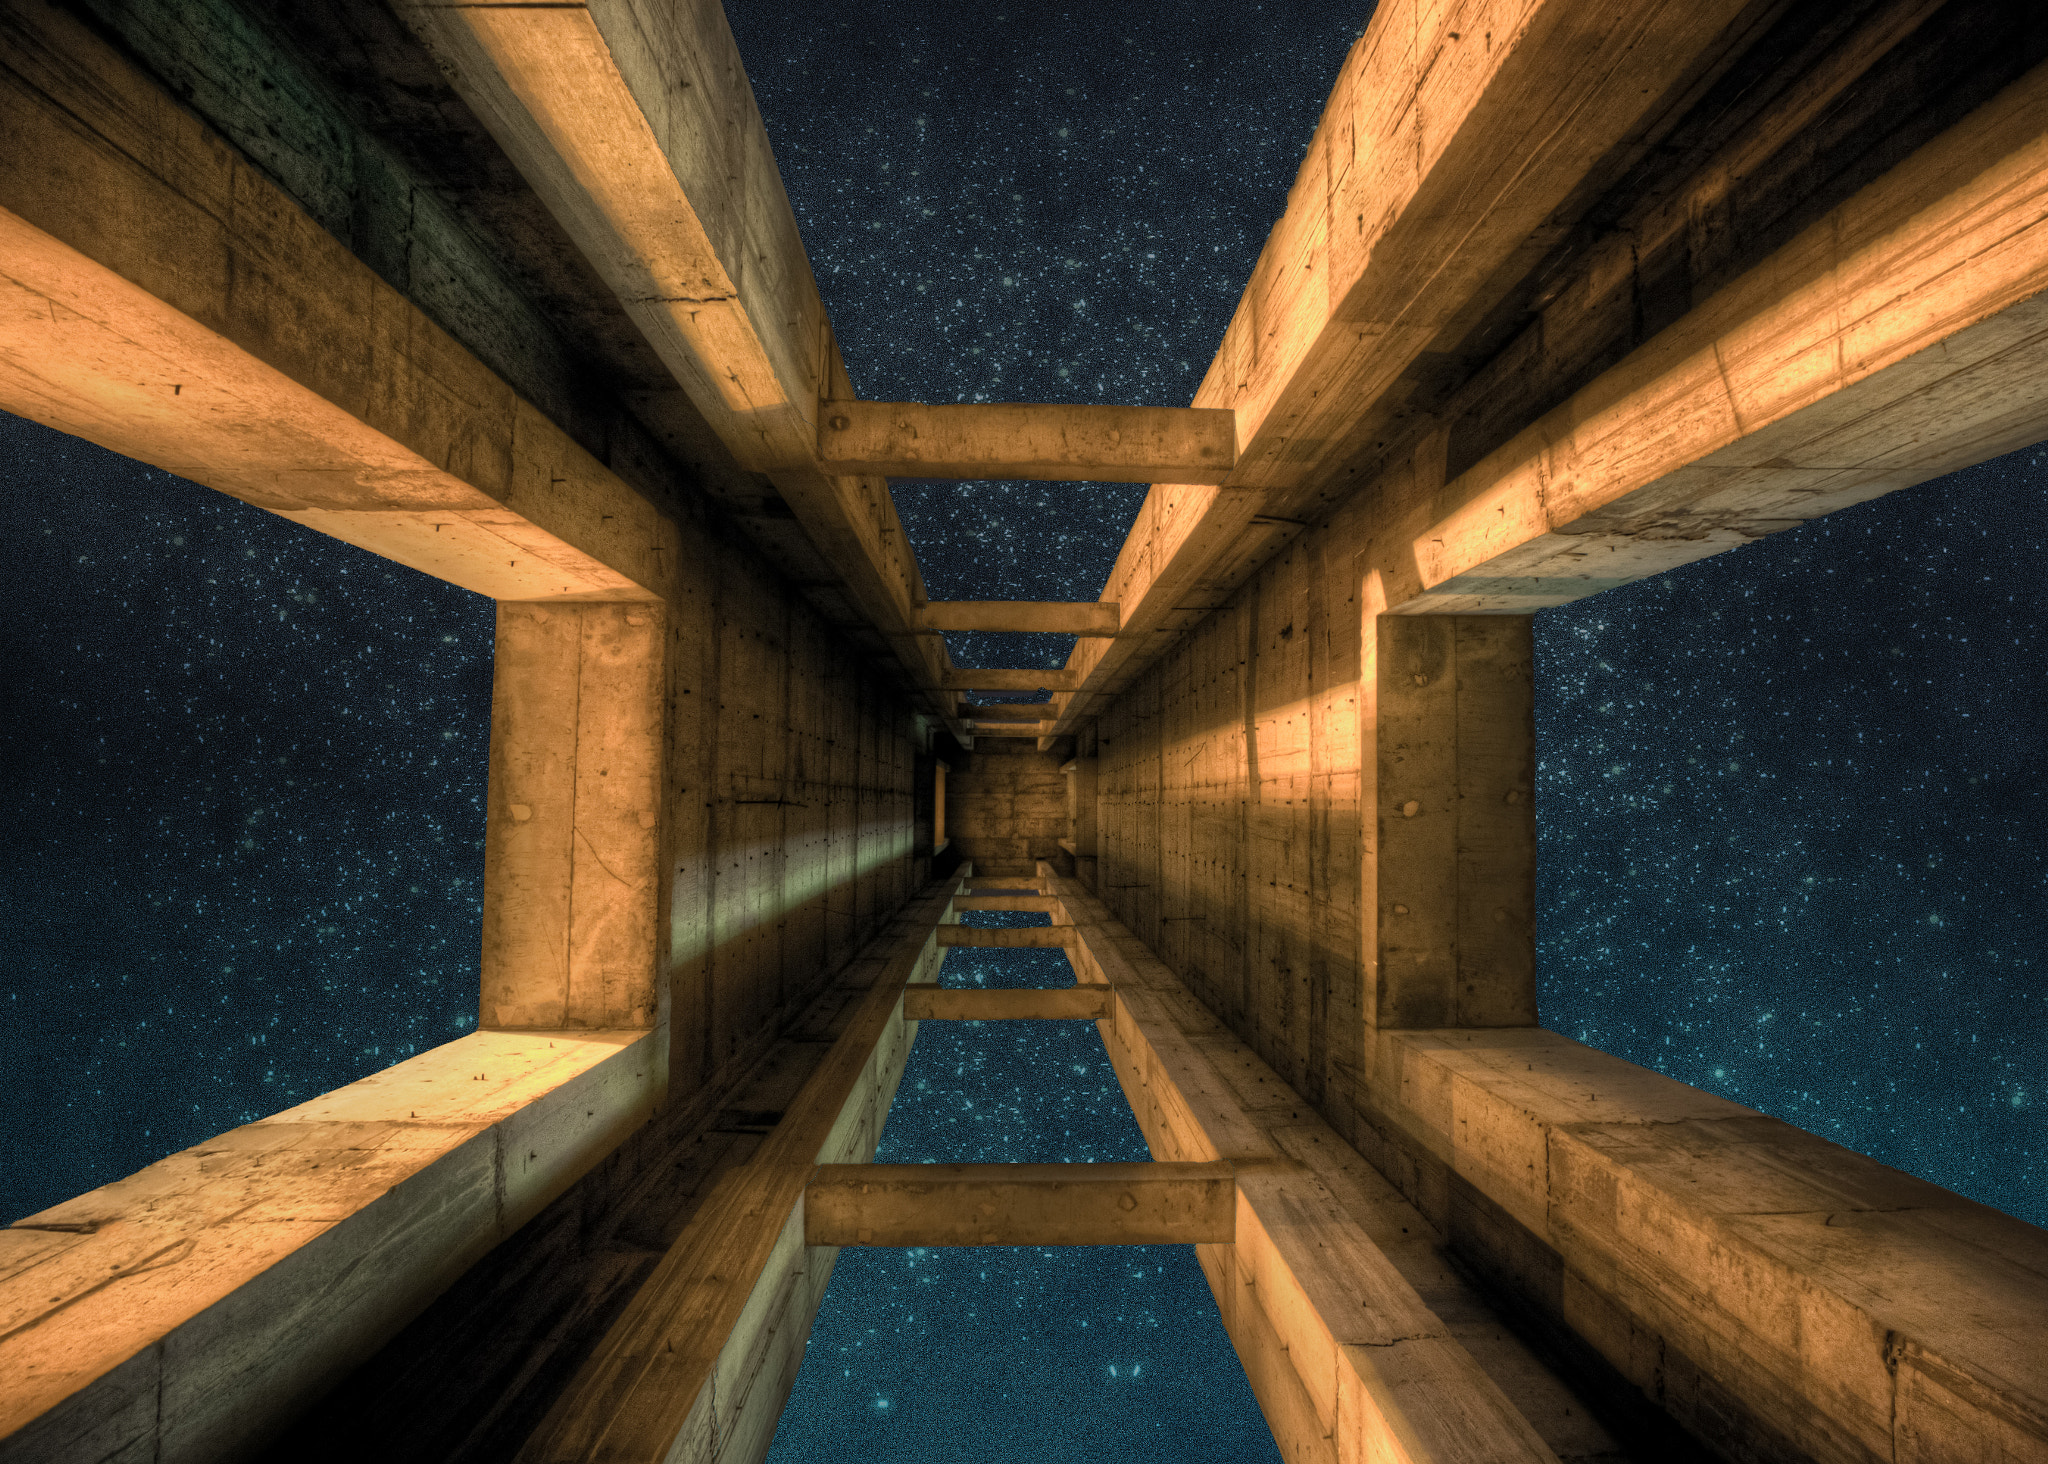 Photograph Ladder to the Stars by ahmed alkuhaili on 500px